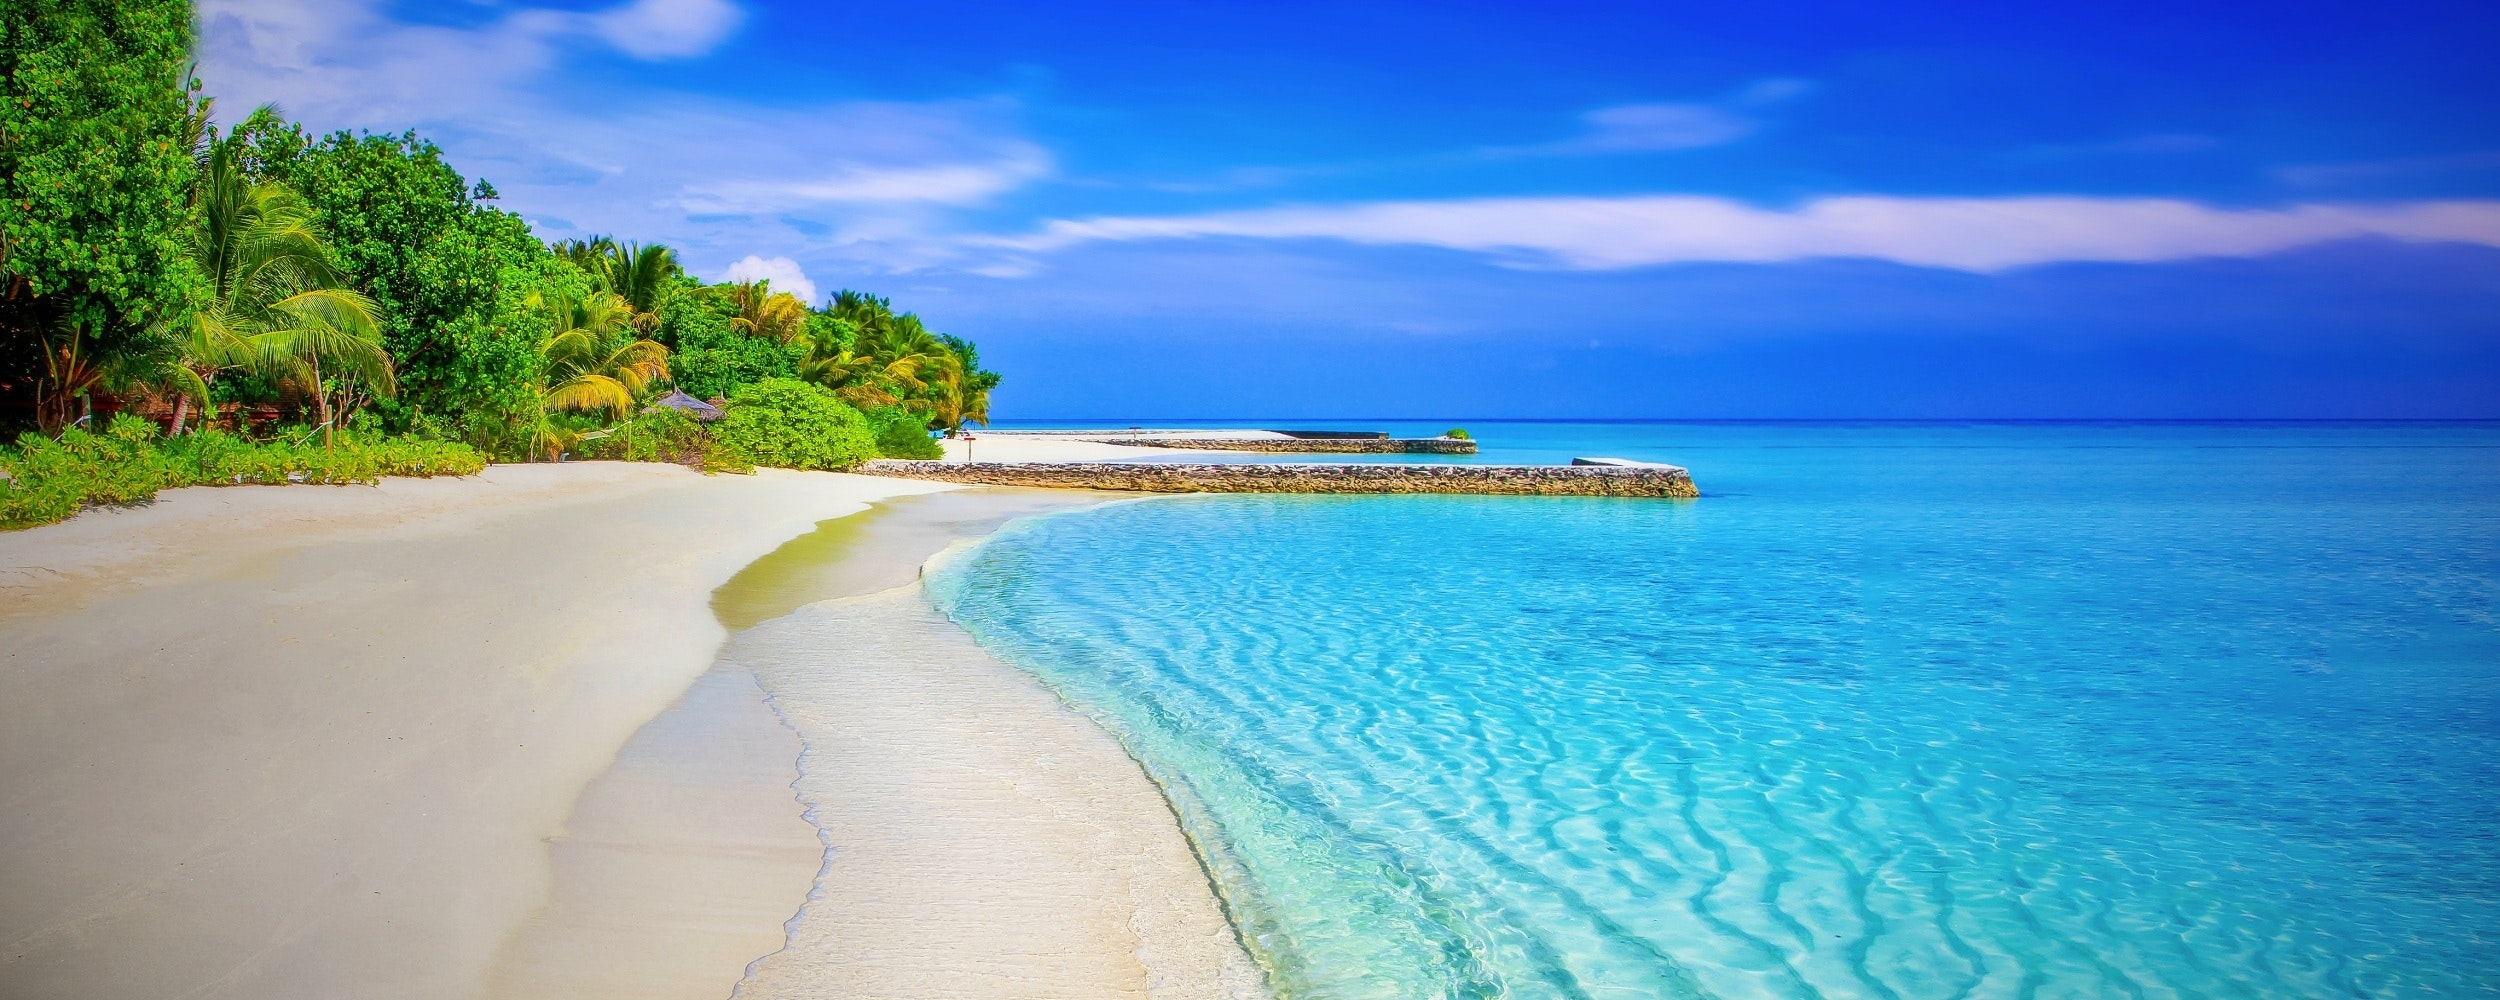 Scenic View of Beach, Beach, Sand, Vacation, Tropical, HQ Photo